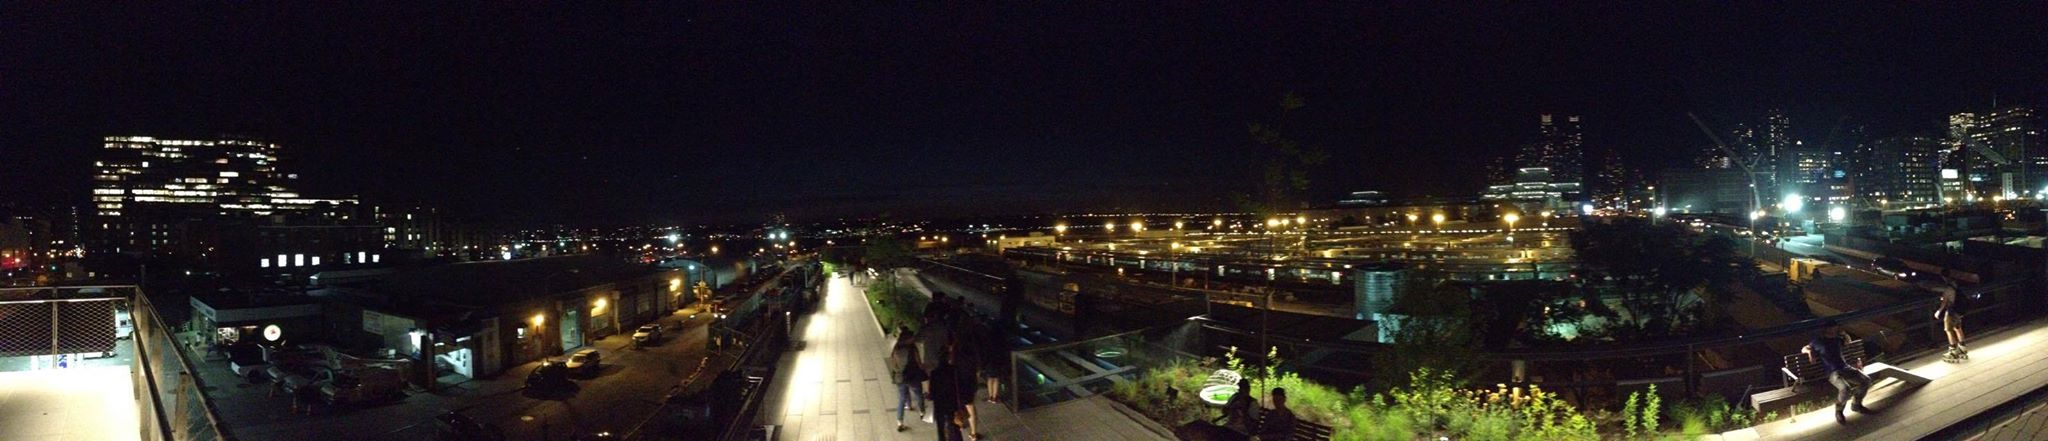 A great panoramic shot of the Chelsea Highline at night